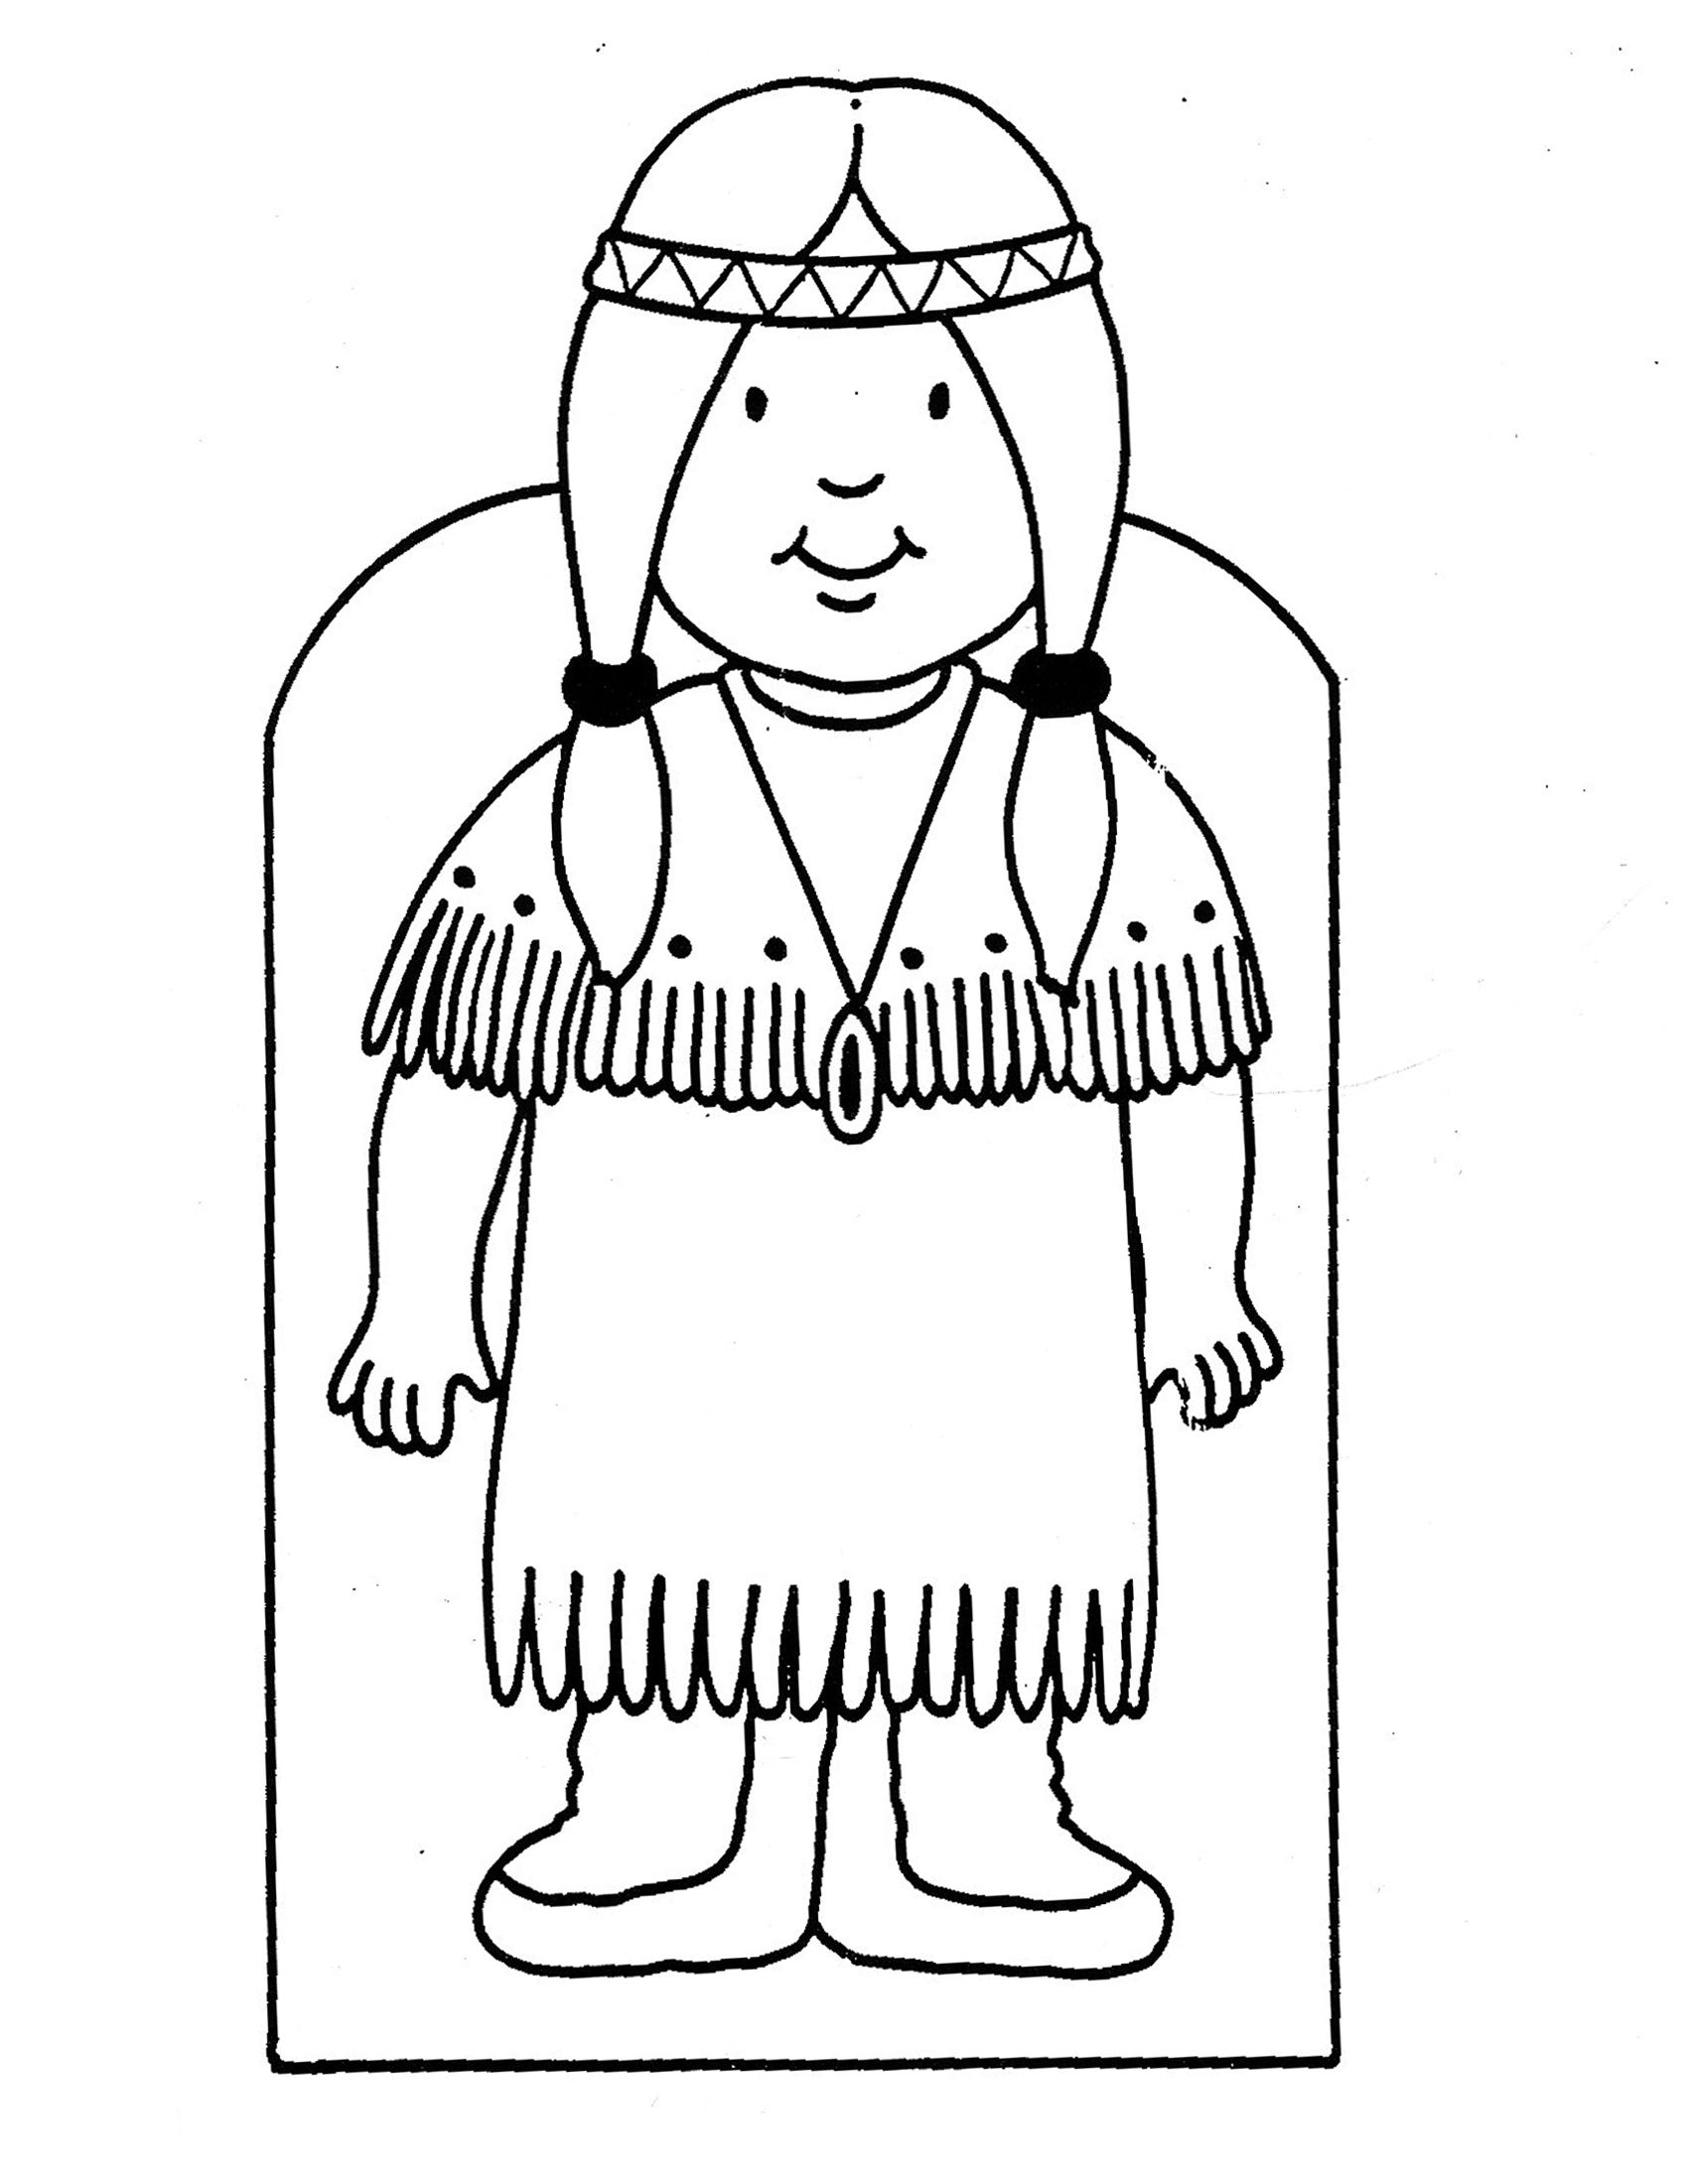 coloring pages cherokee indians - photo#21